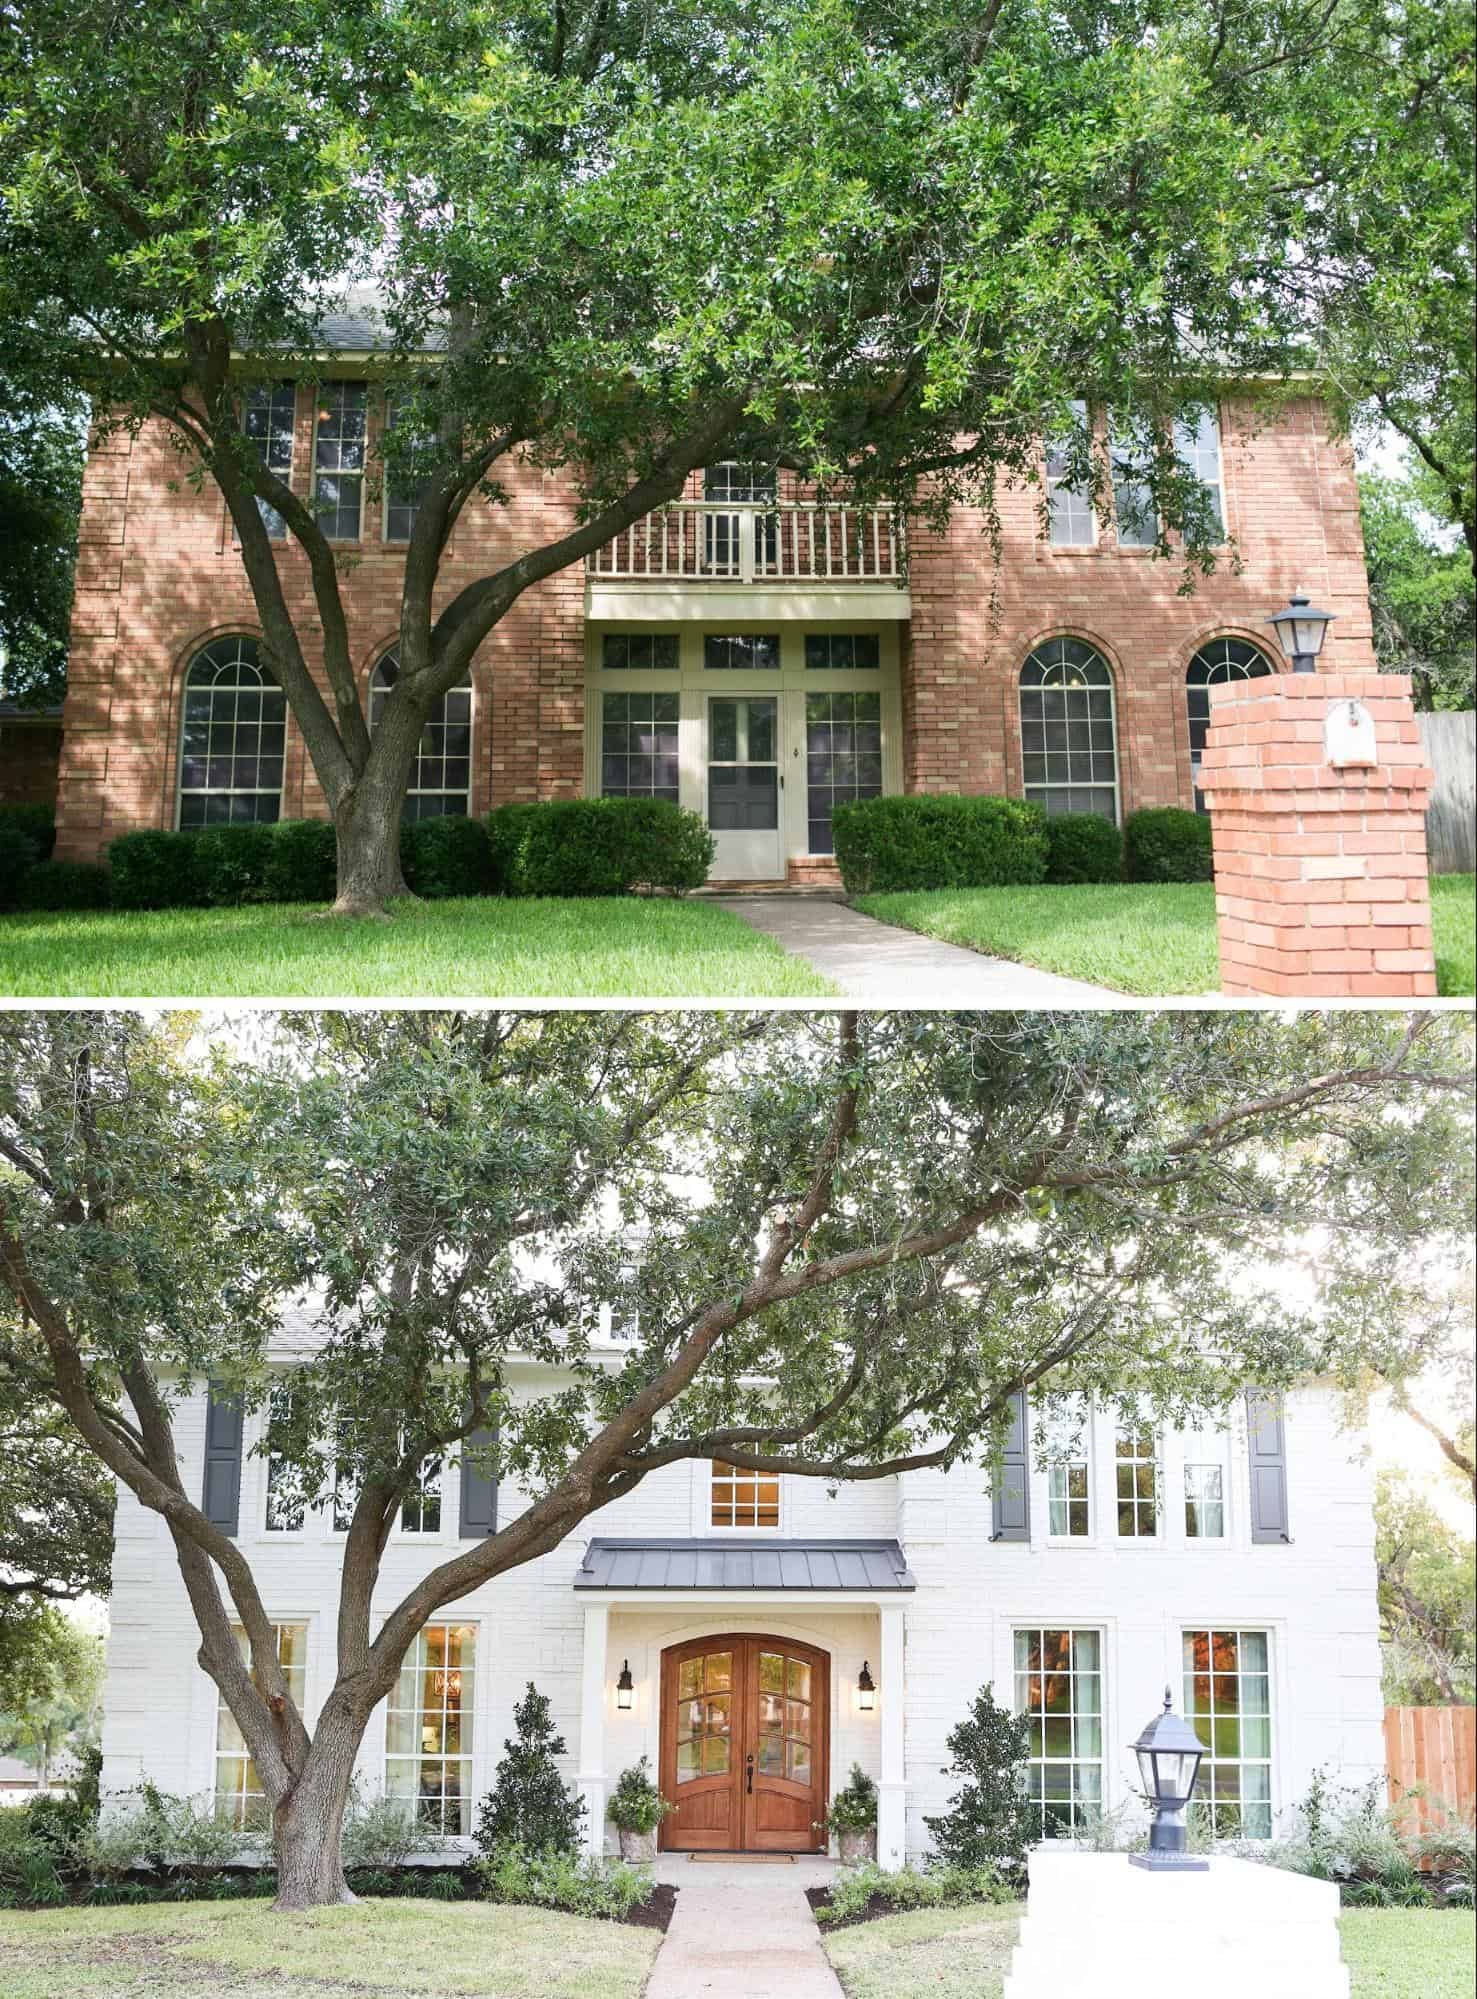 Curb appeal Before and After: Upgrade your front door #curbAppealProjects #curbAppeal #houseExterior #homeExterior #homeExteriorIdeas #houseDesign  #homeMakeover #frontDoor #frontDoorDecor #beforeafter